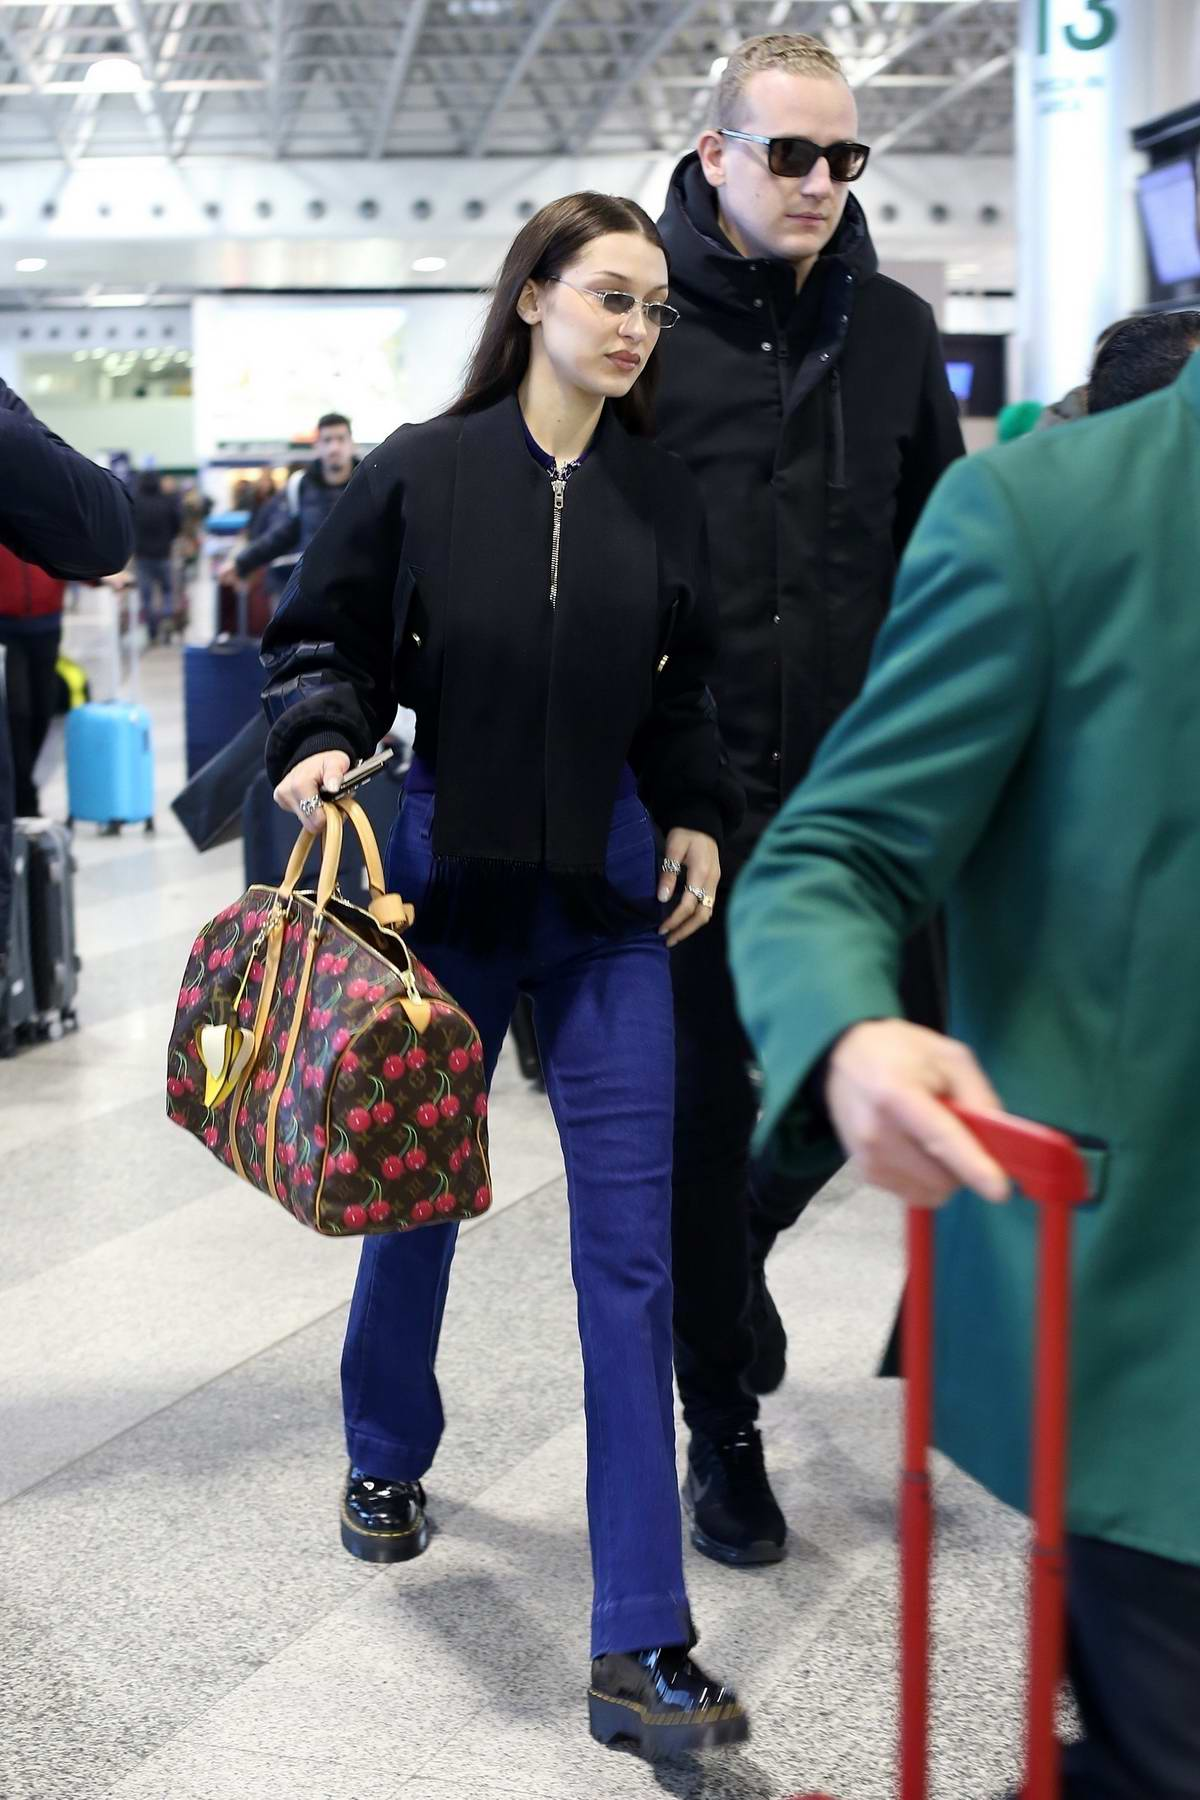 Bella Hadid arrives to catch a flight out of Malpensa Airport in Milan, Italy